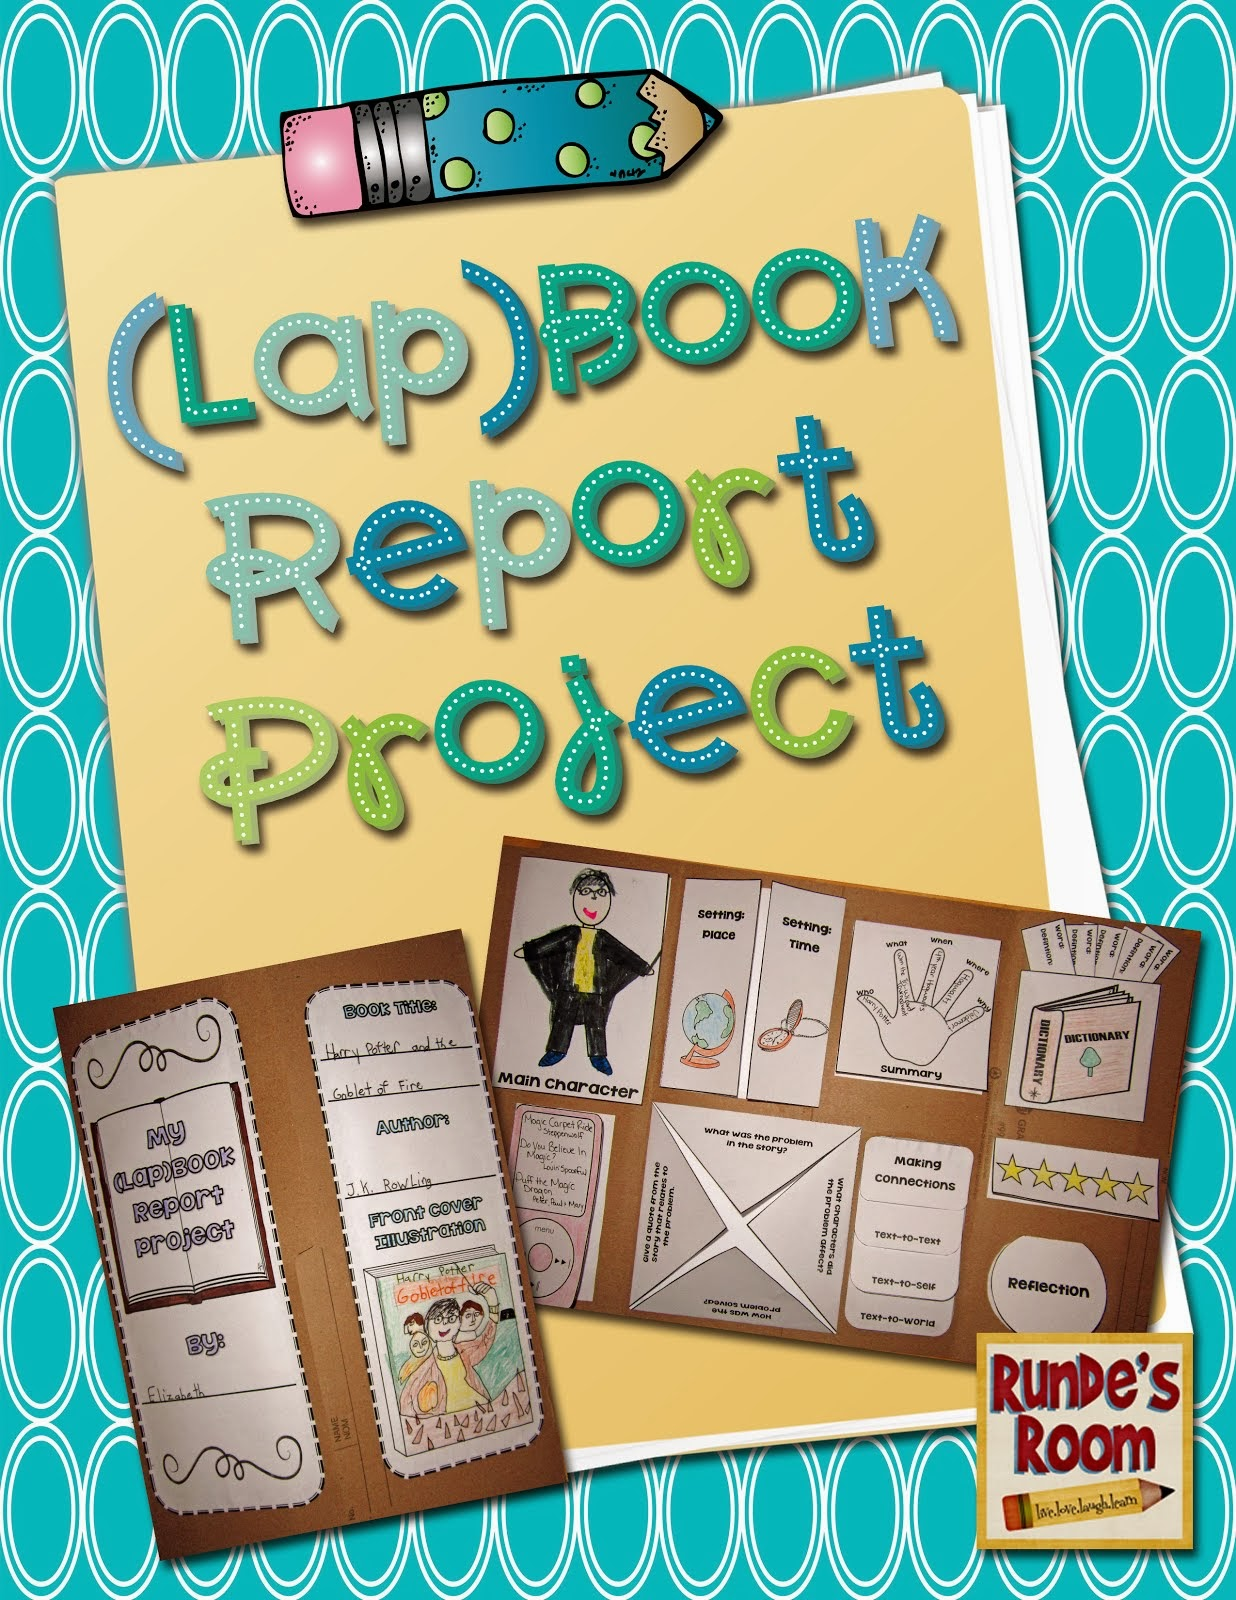 art projects for book reports Book report worksheet template from notes category hundreds of free printable papercraft templates of origami, cut out paper dolls, stickers, collages, notes, handmade gift boxes with do-it-yourself instructions.